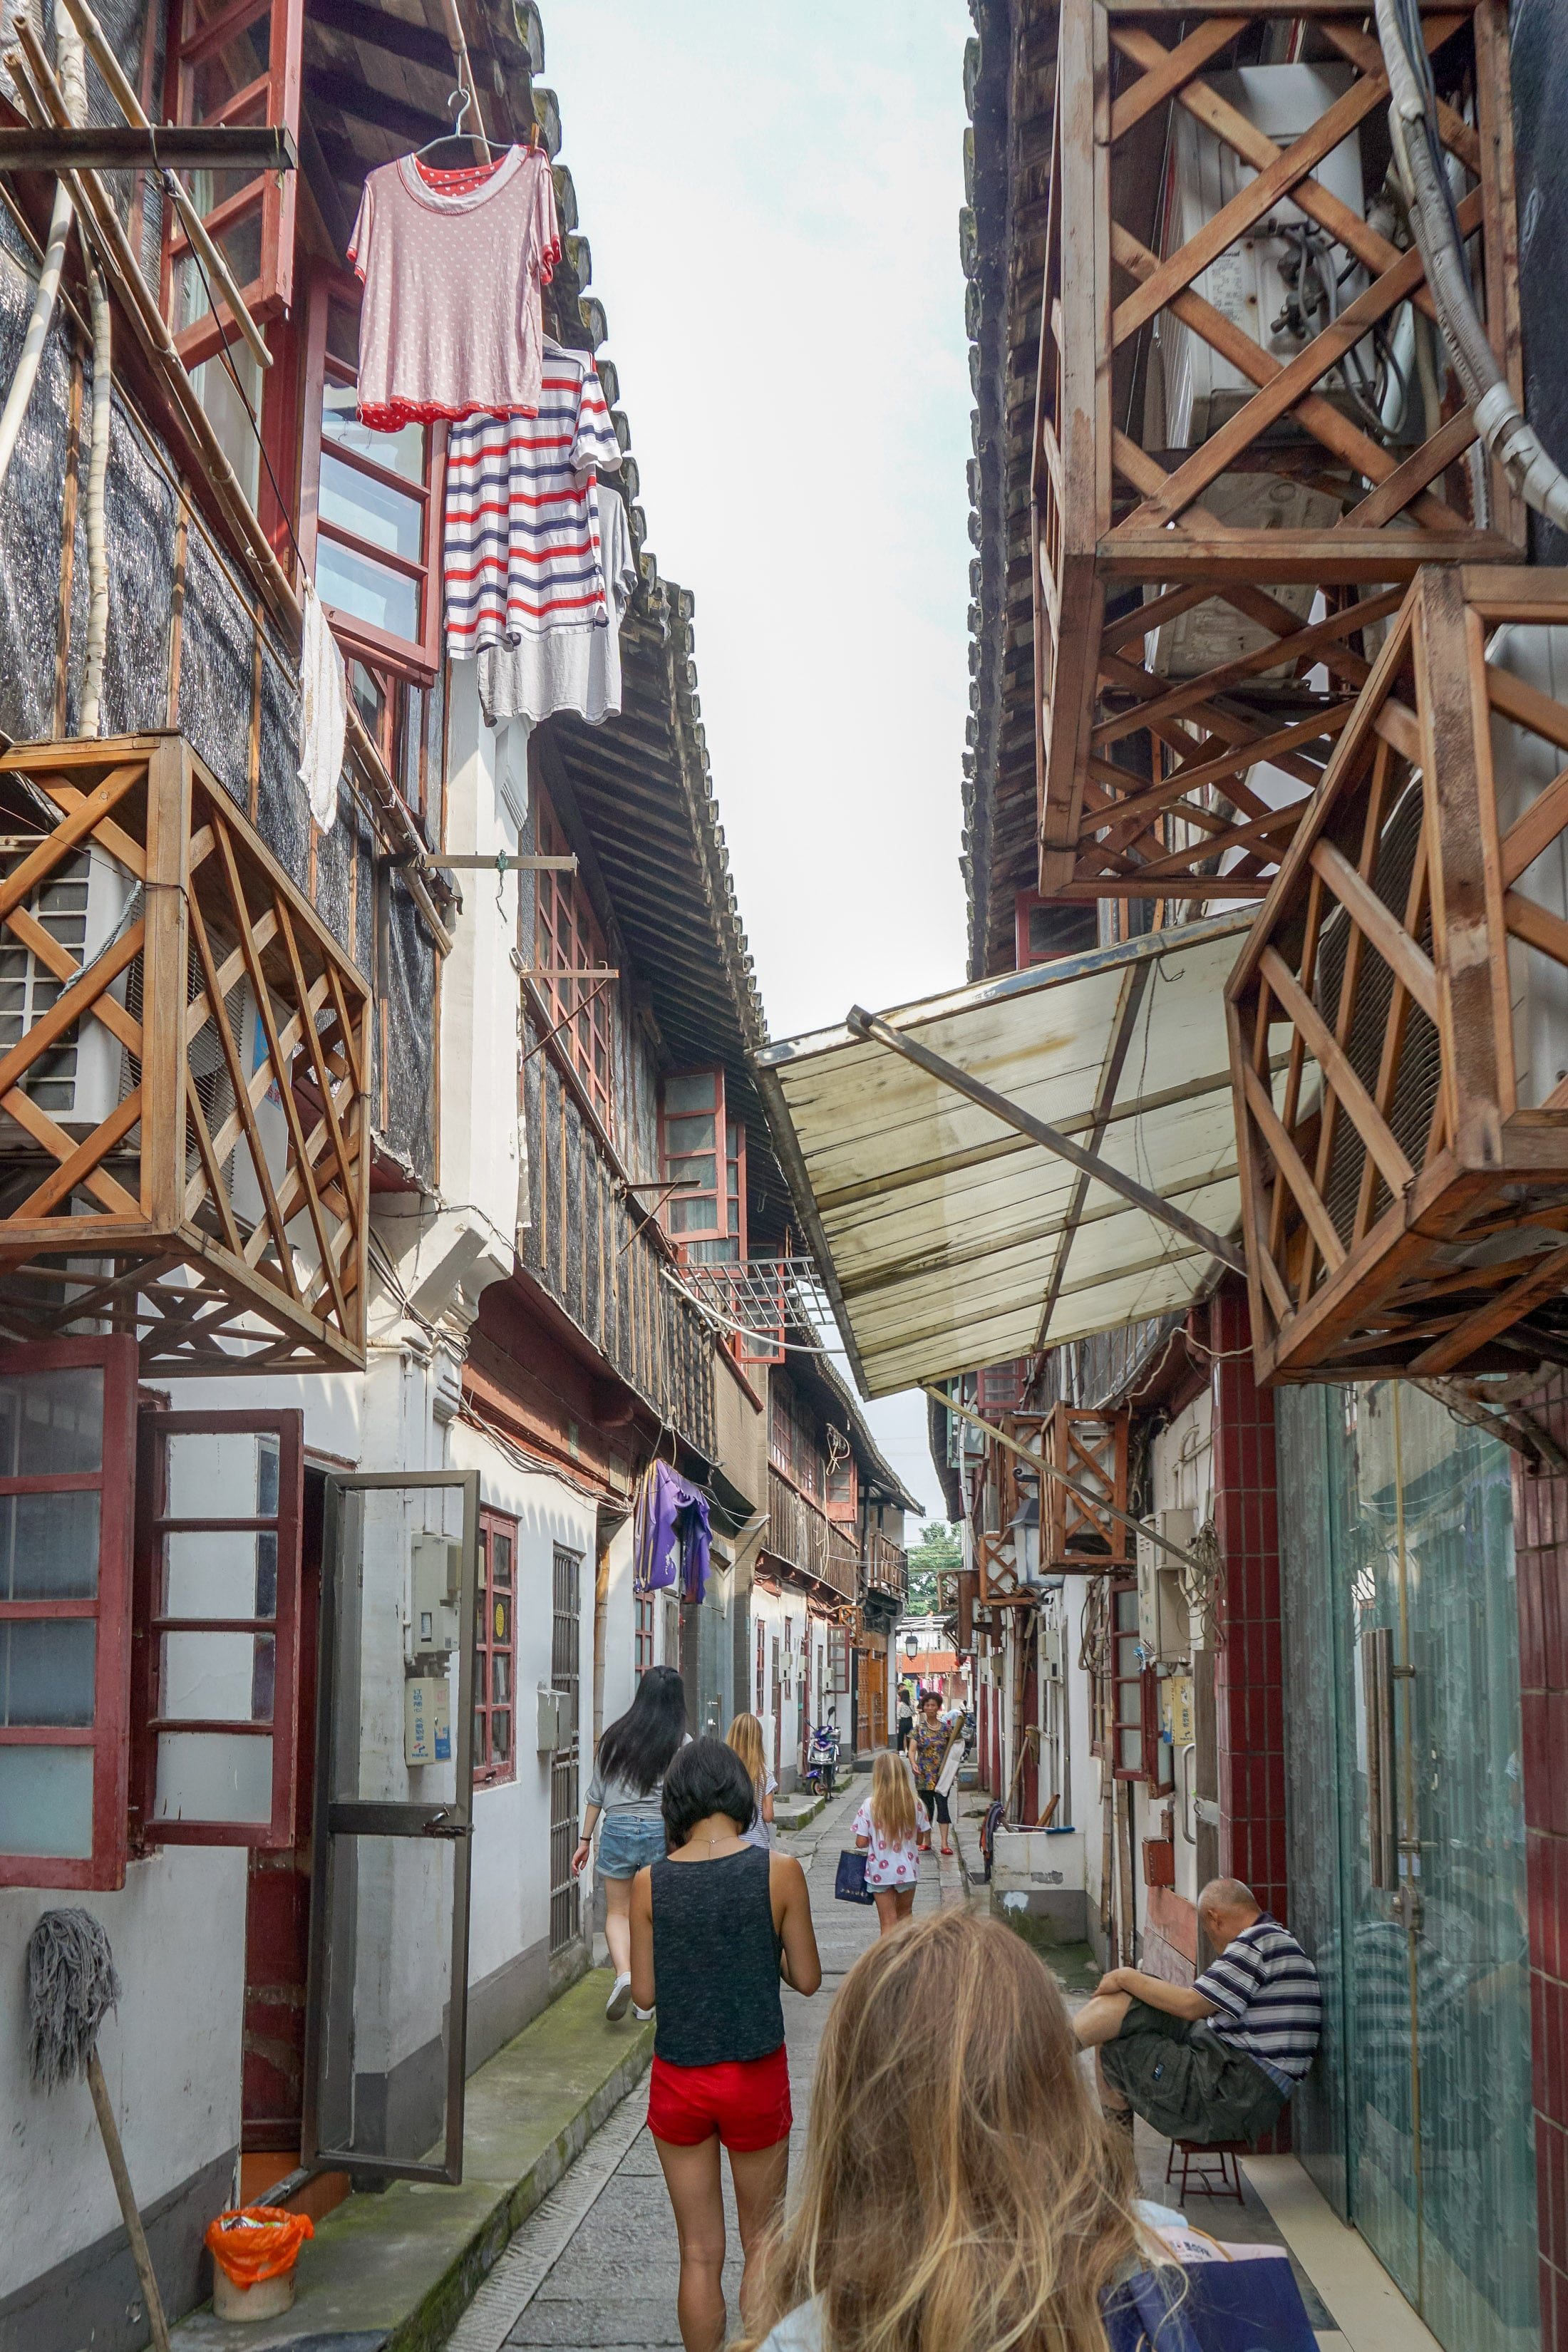 A small street at Zhujiajiao water town near Shanghai